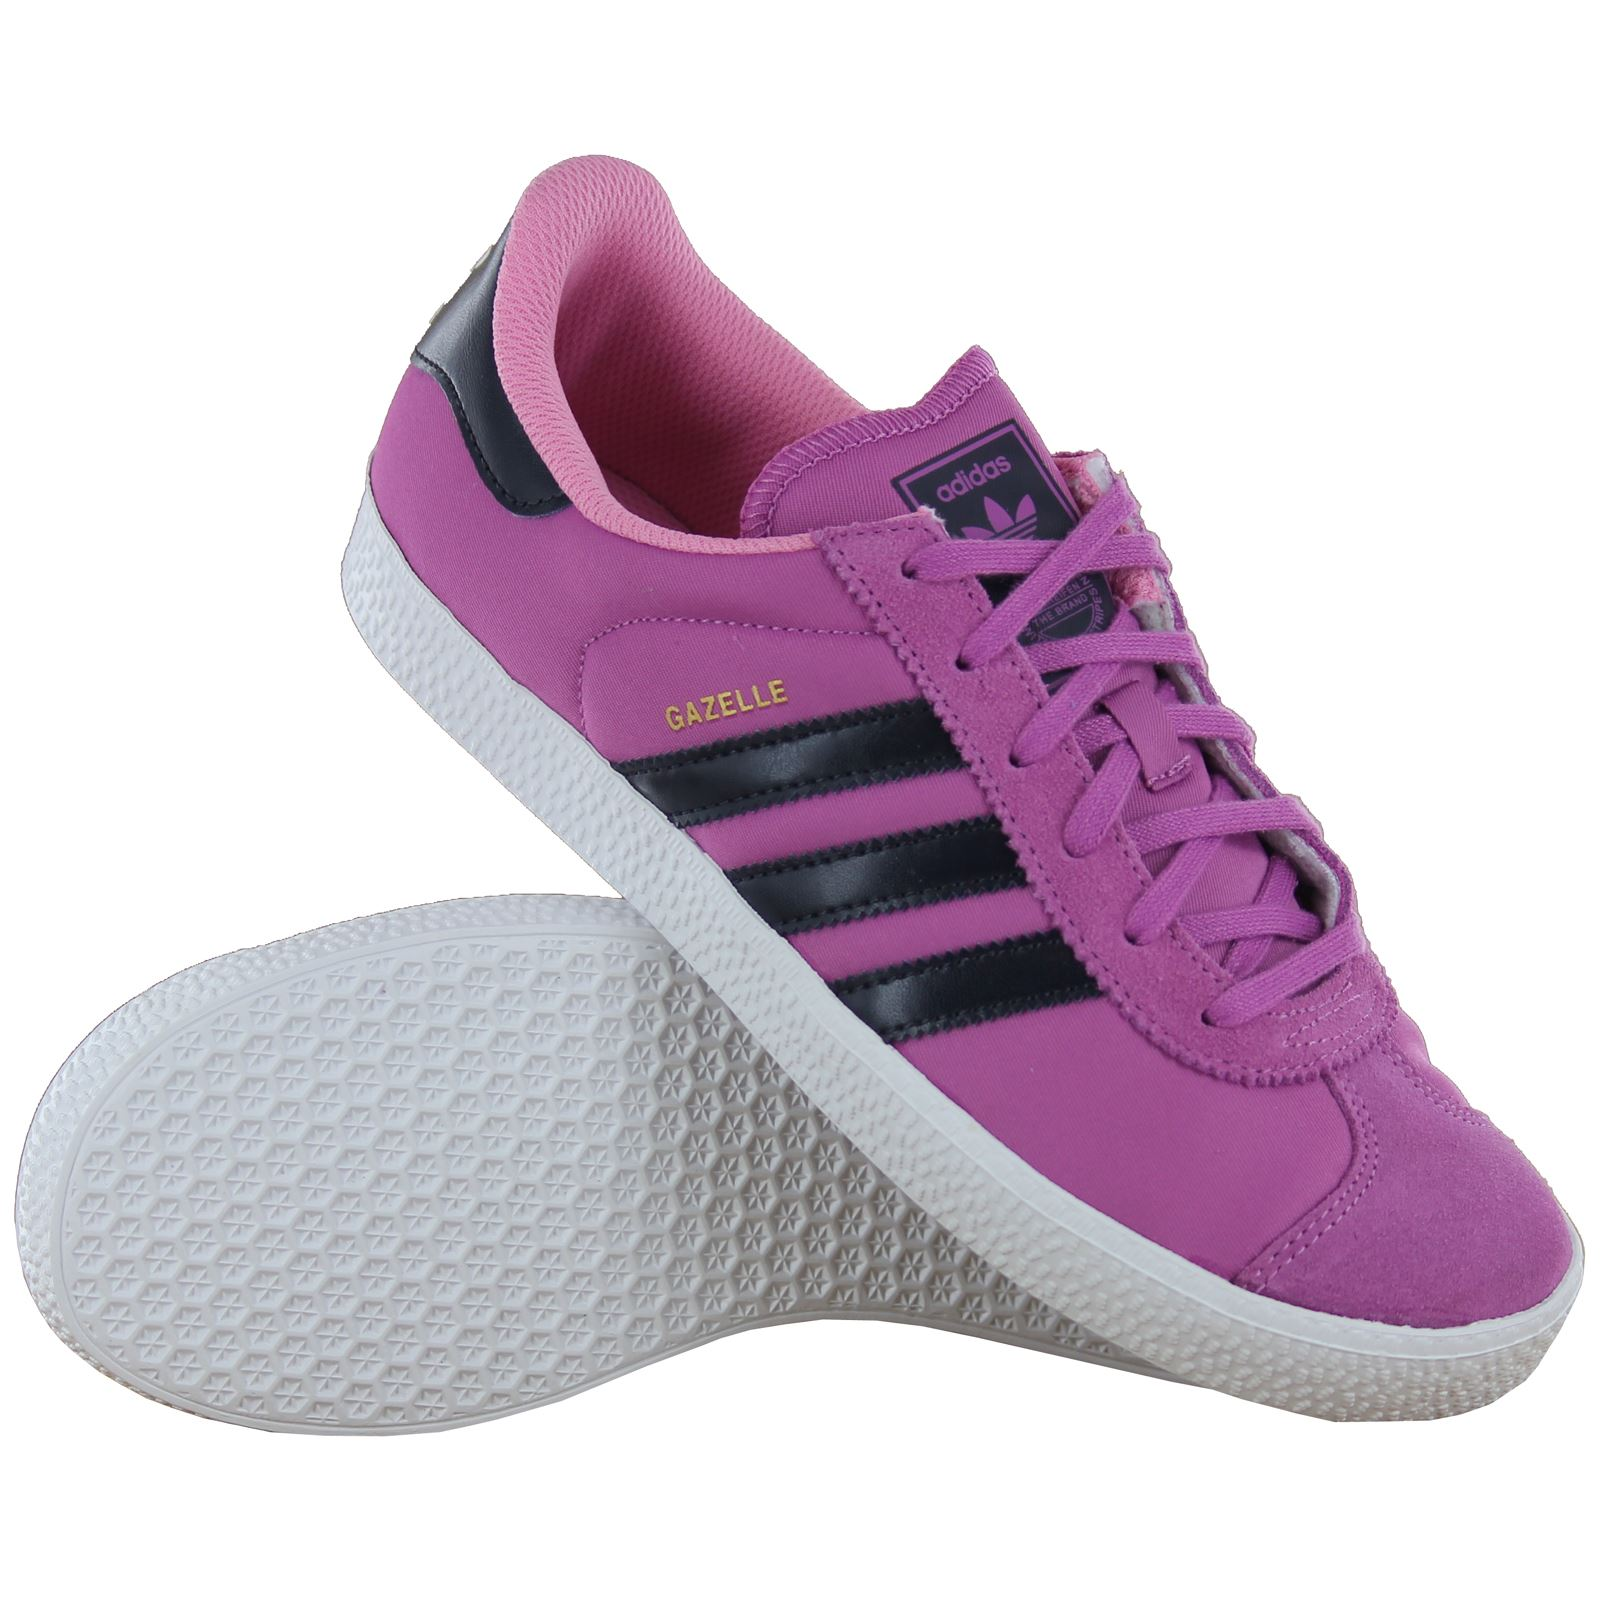 adidas gazelle 2 pink youths trainers d67212. Black Bedroom Furniture Sets. Home Design Ideas